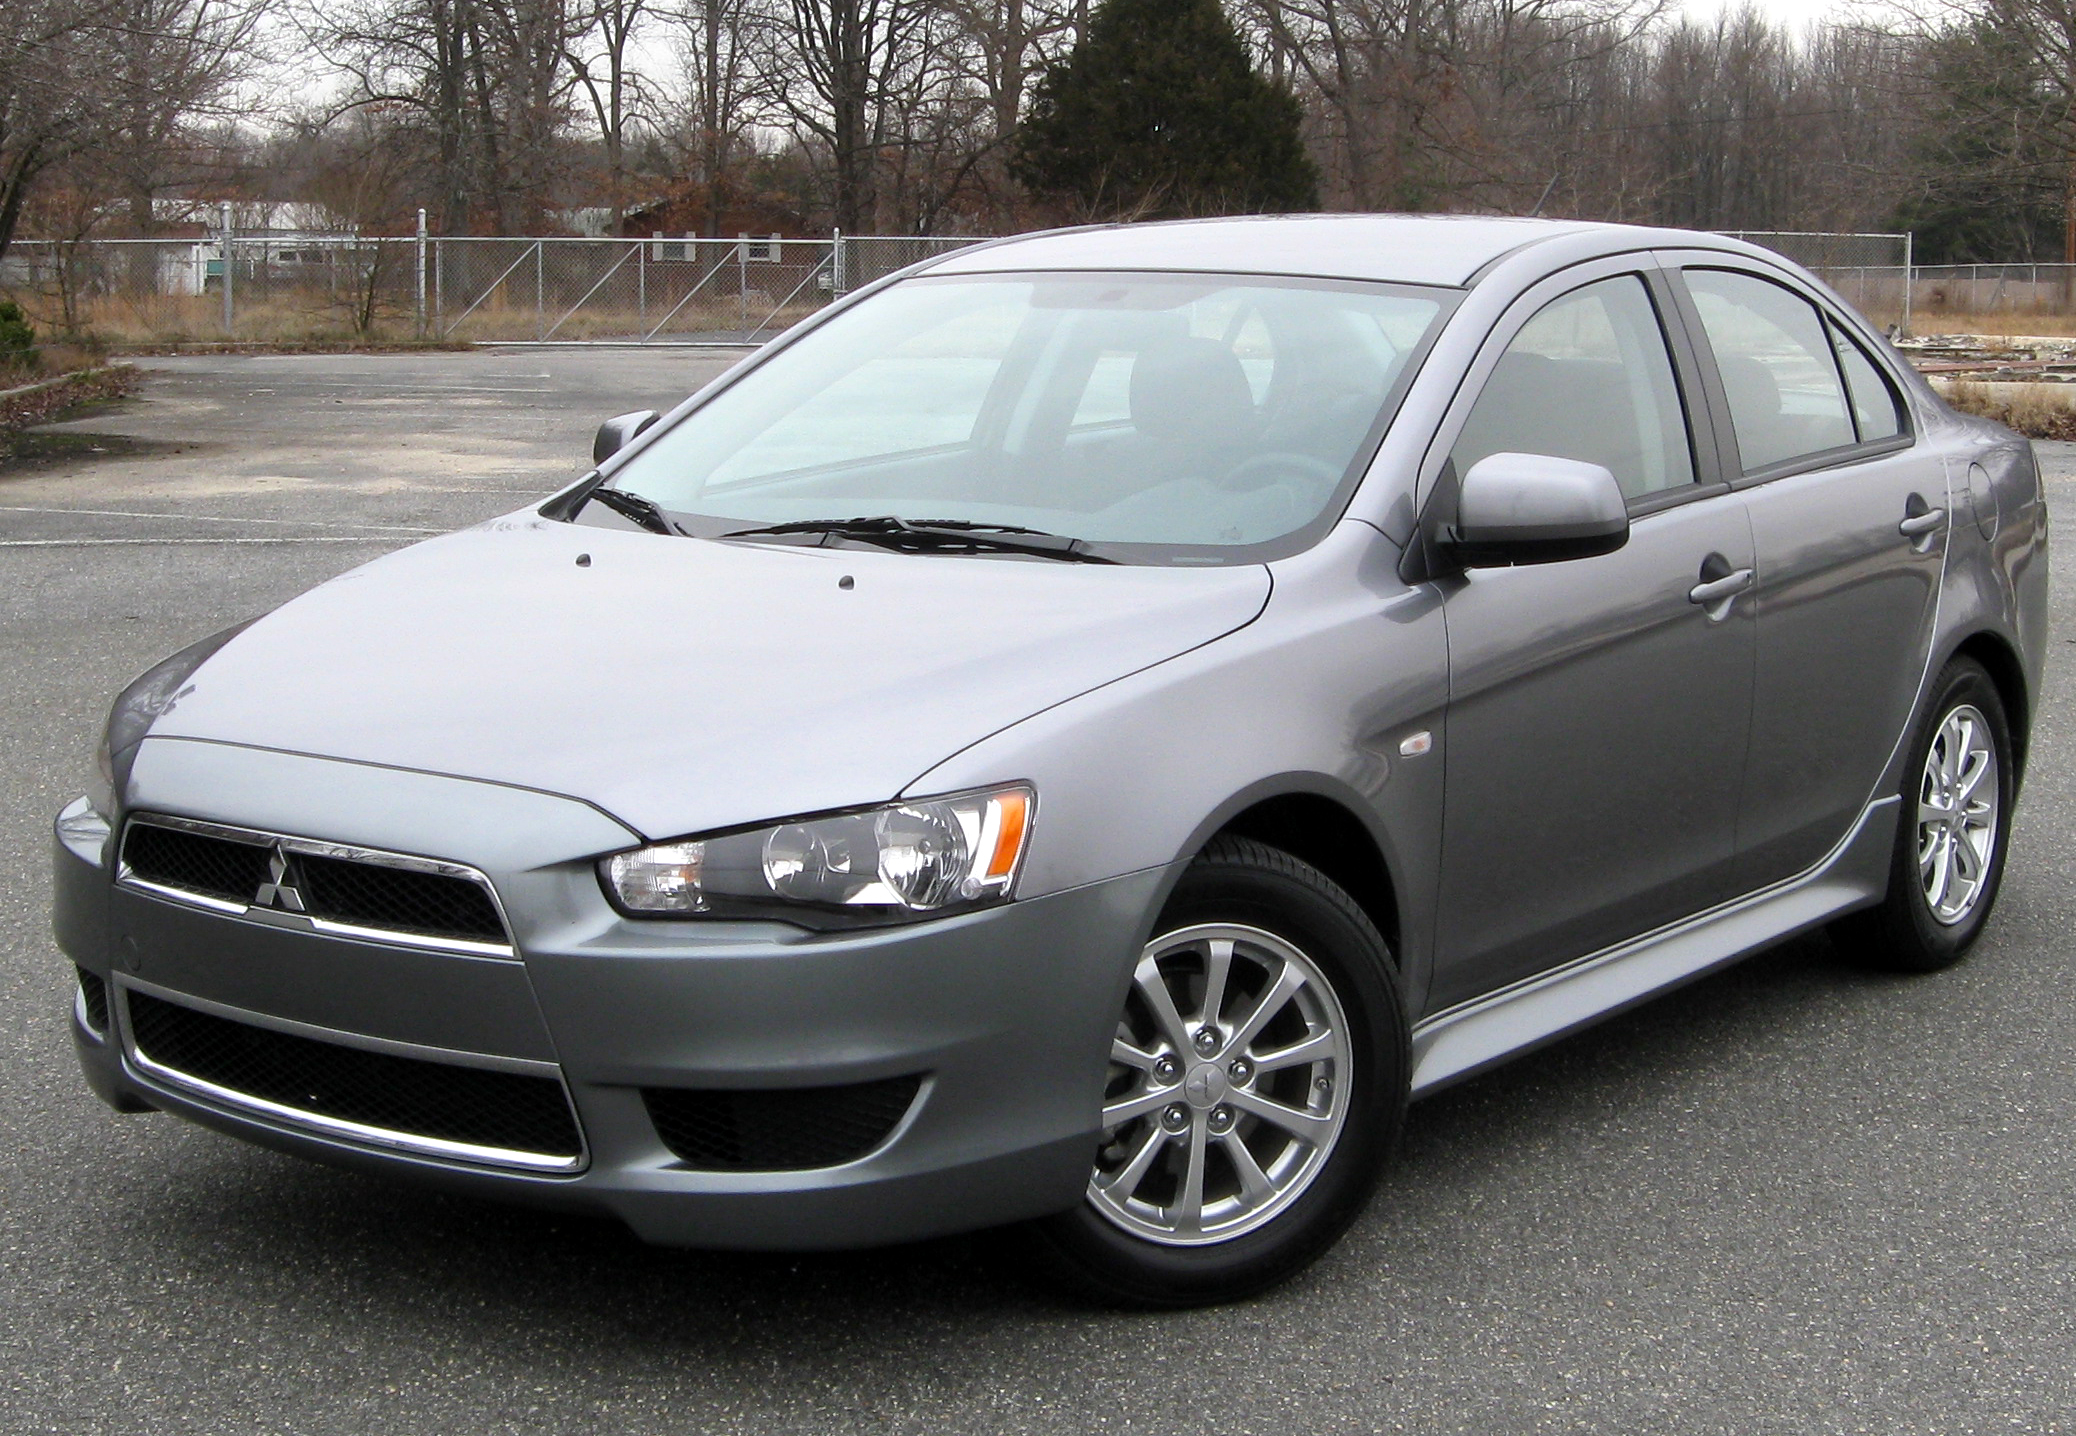 2012 Mitsubishi Lancer - Information and photos - ZombieDrive